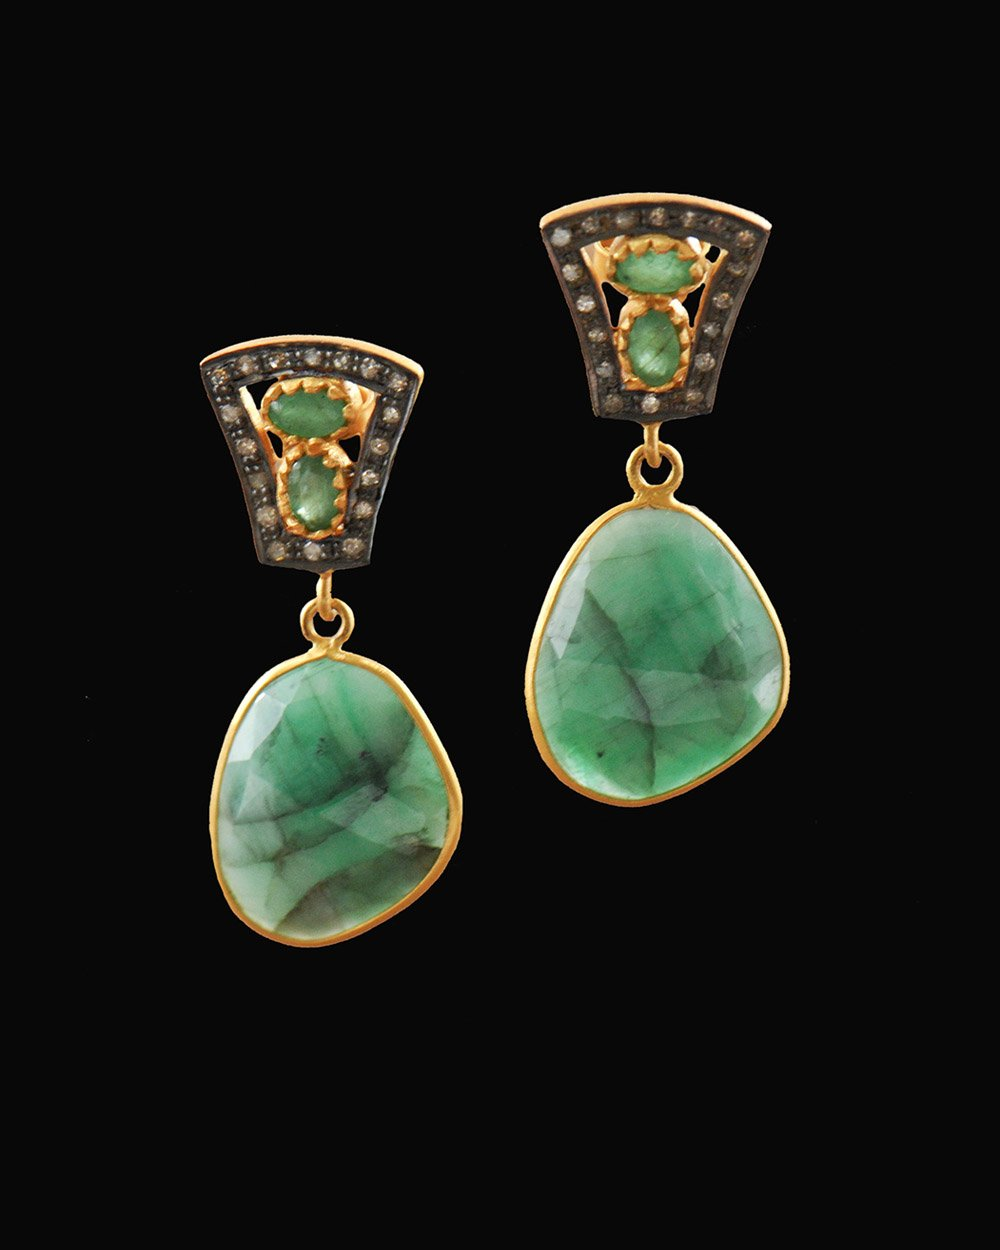 Emerald and Diamond Vintage Earrings